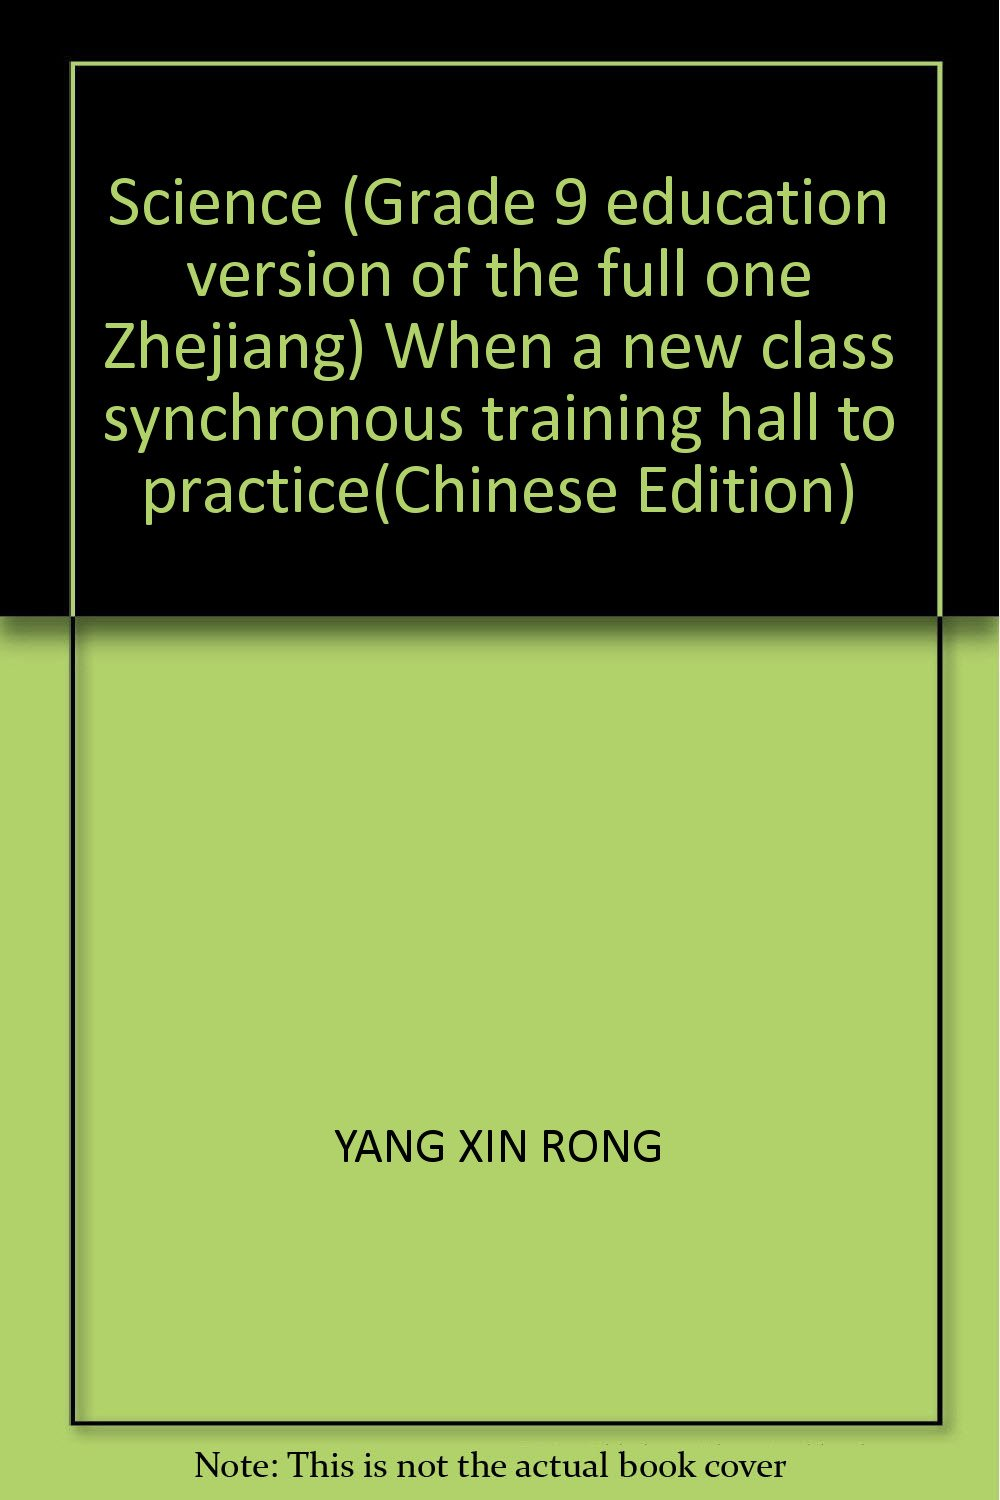 Download Science (Grade 9 education version of the full one Zhejiang) When a new class synchronous training hall to practice(Chinese Edition) ebook